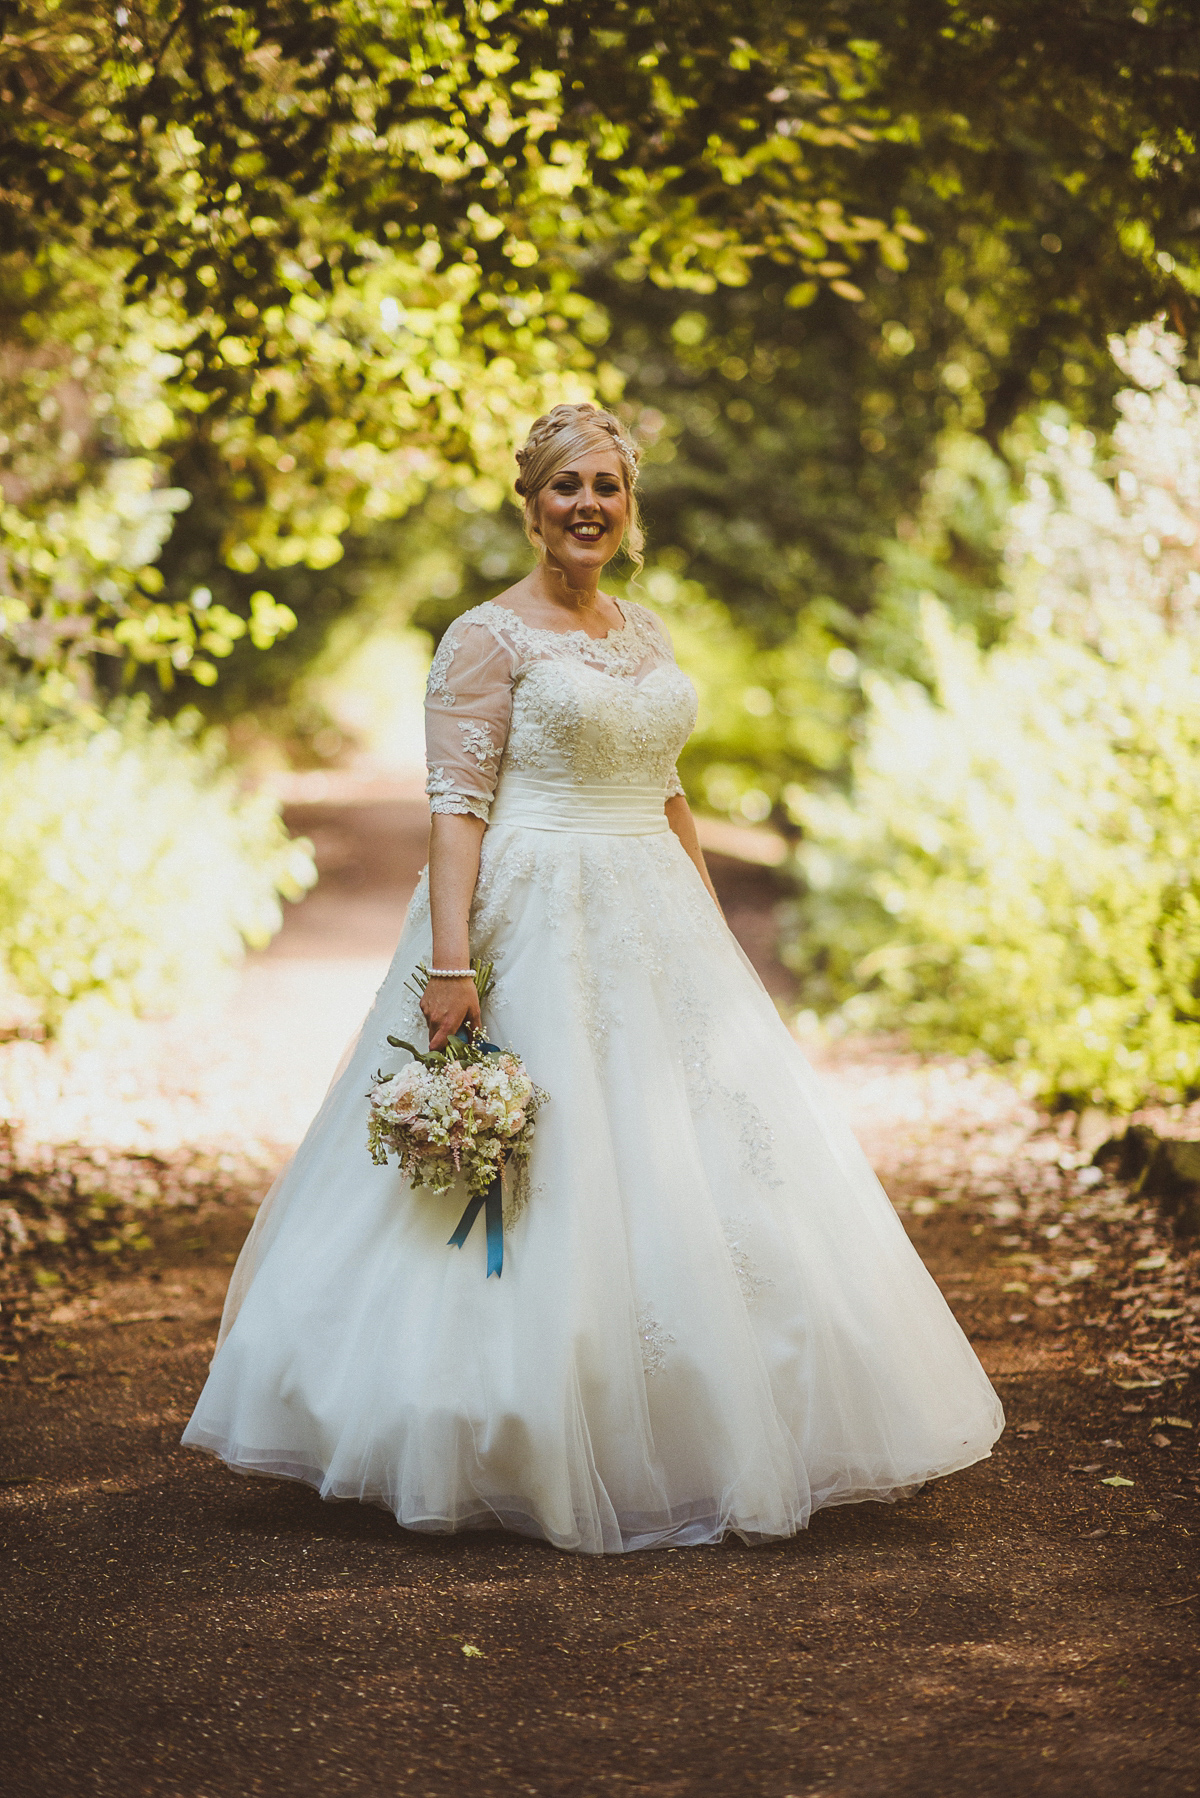 175607be608 ... as you like it city pub wedding matt penberthy photography -  Bridesmaids in White for an ...